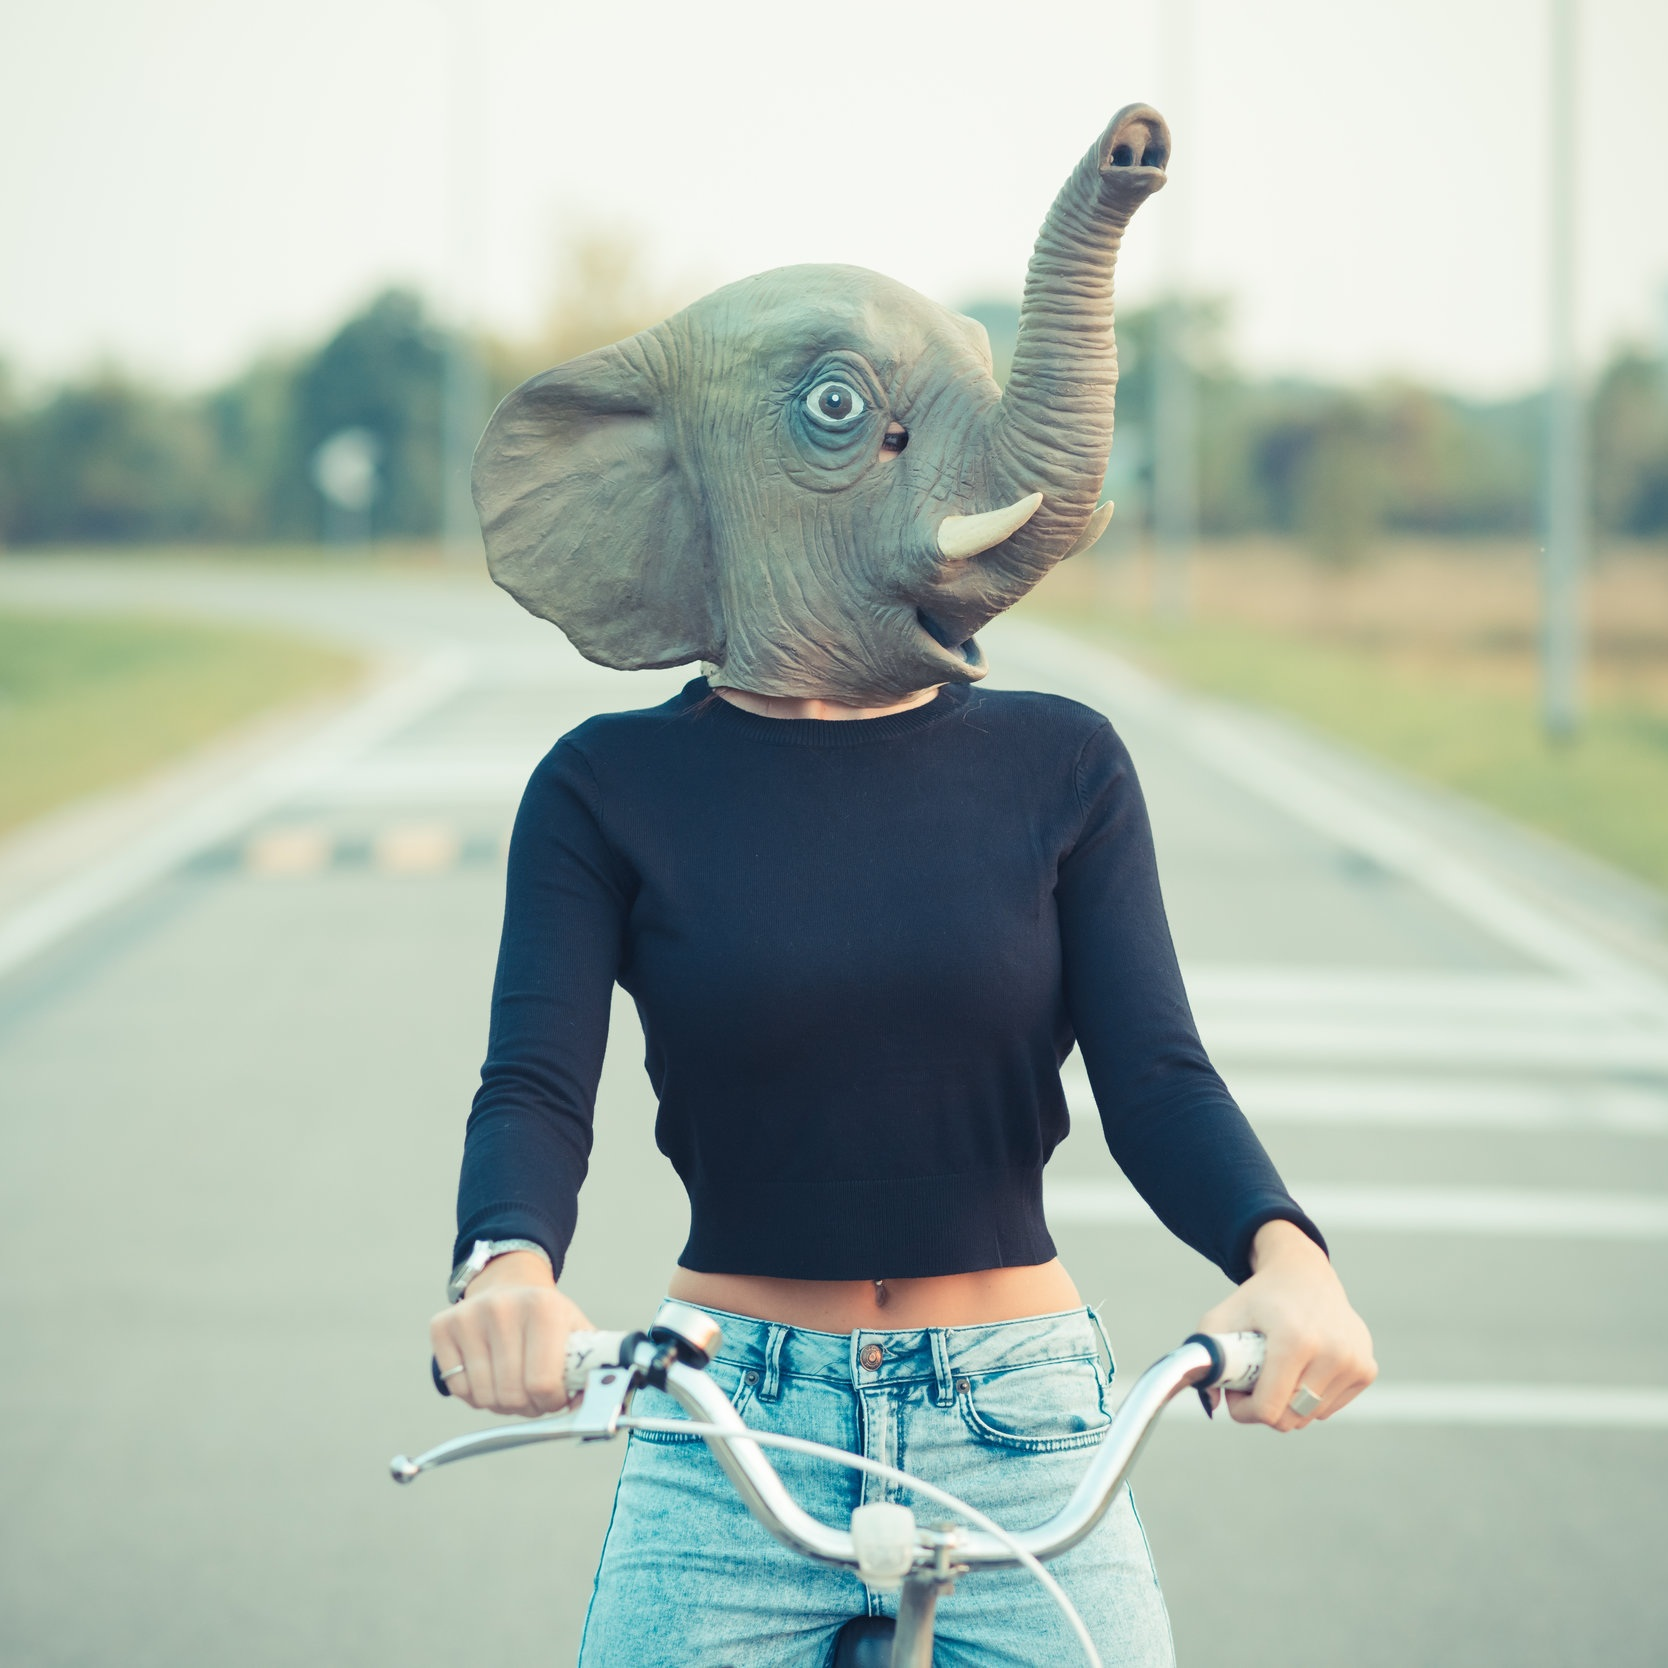 graphicstock-elephant-mask-young-beautiful-brunette-straight-hair-woman-using-bike-outdoor_SaK1U7jkb.jpg